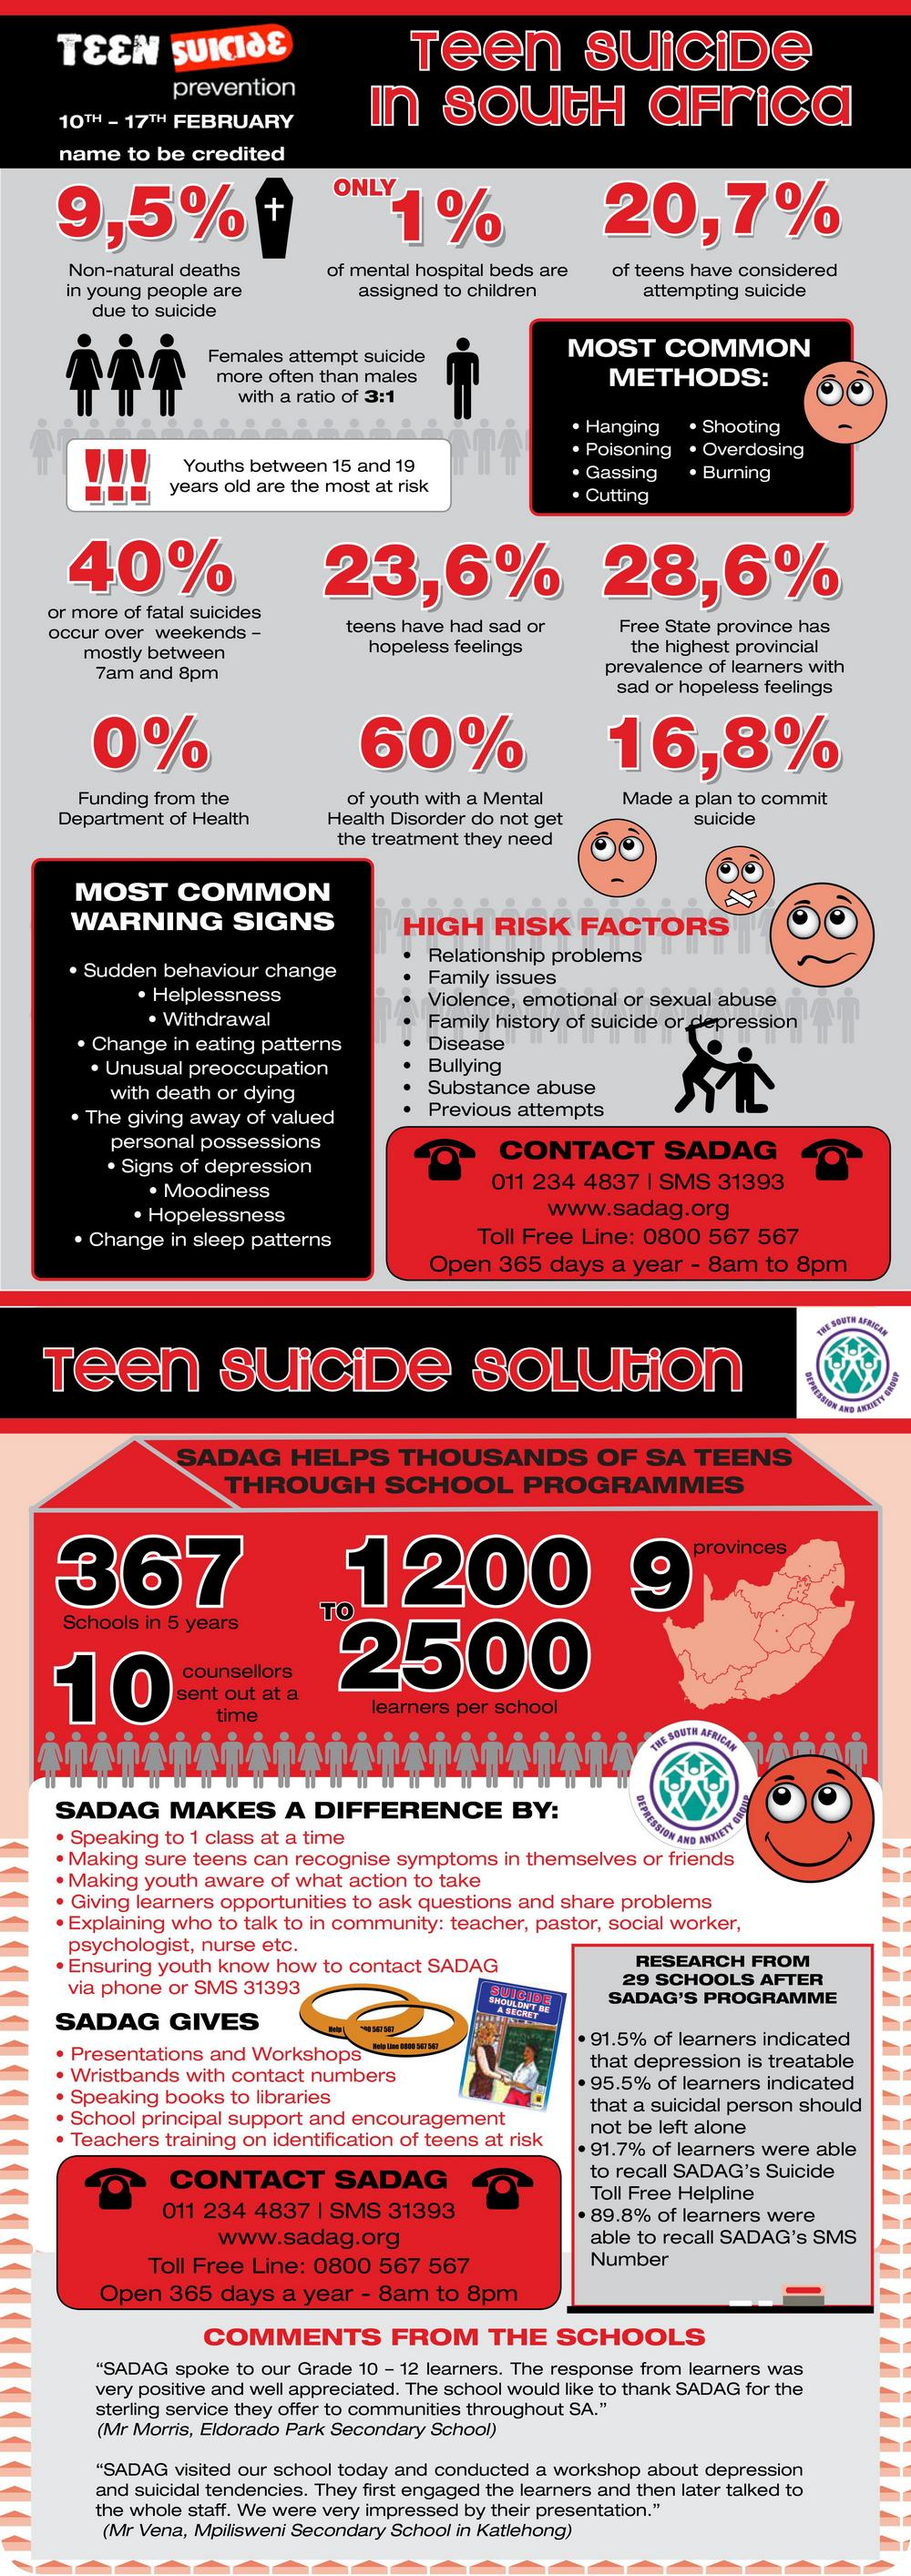 SADAG infographic Teen Suicide 24 June 2014